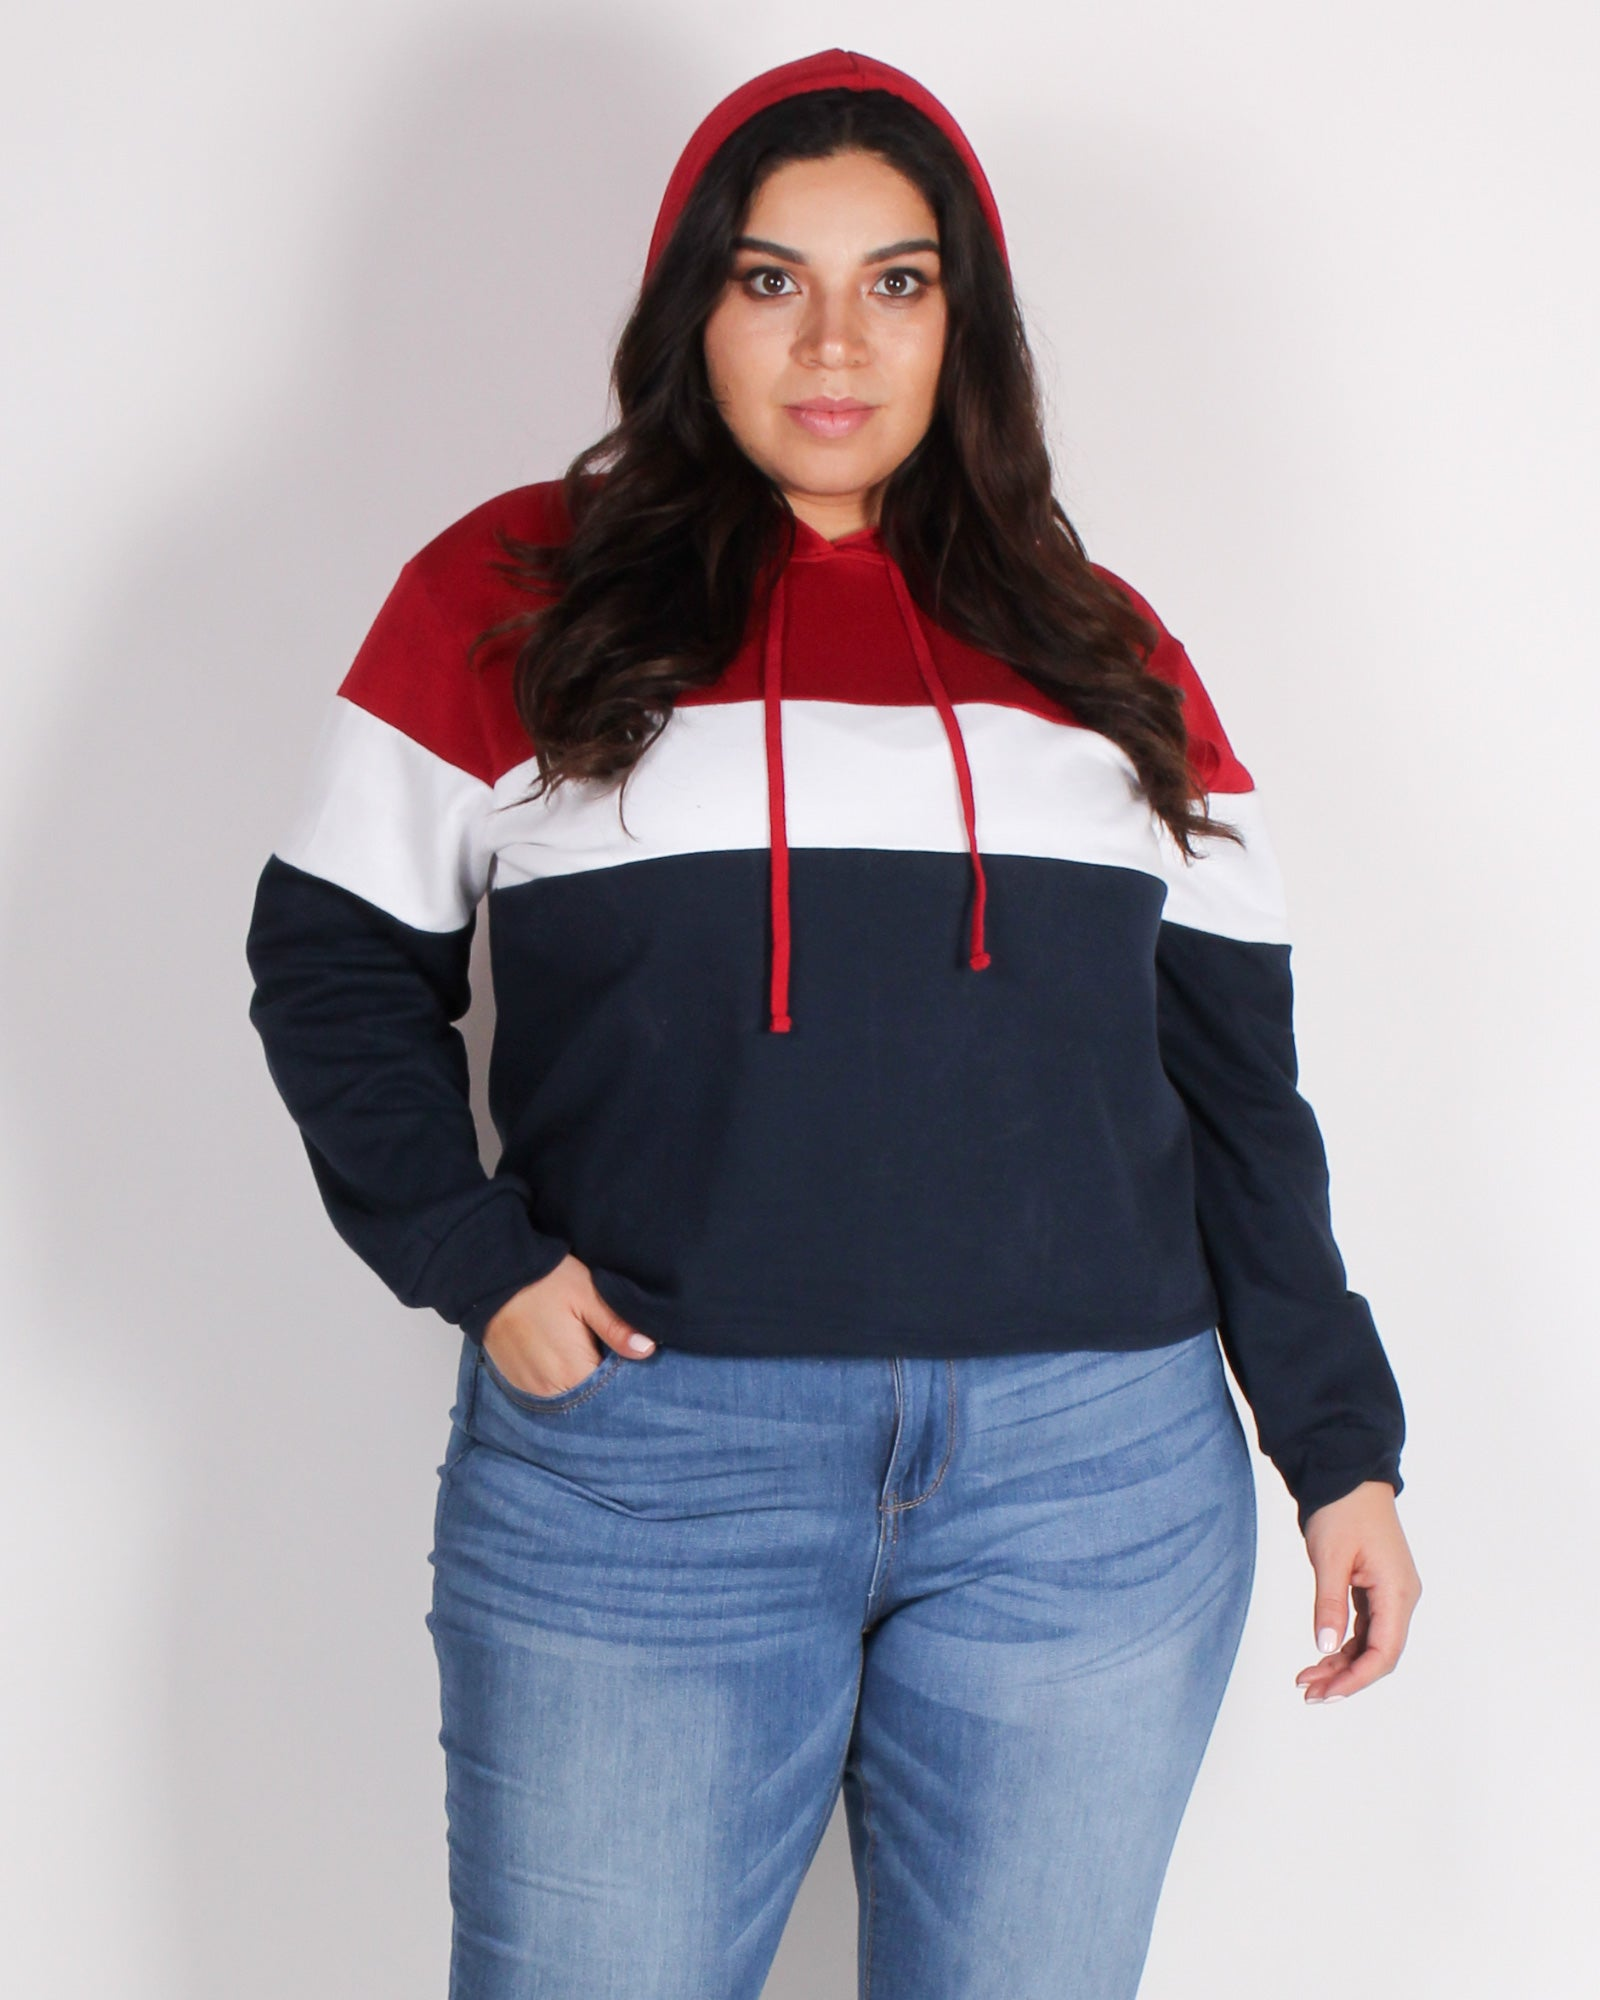 Fashion Q Shop Q Go With the Flow Colorblock Plus Hoodie (Red) 71266XL